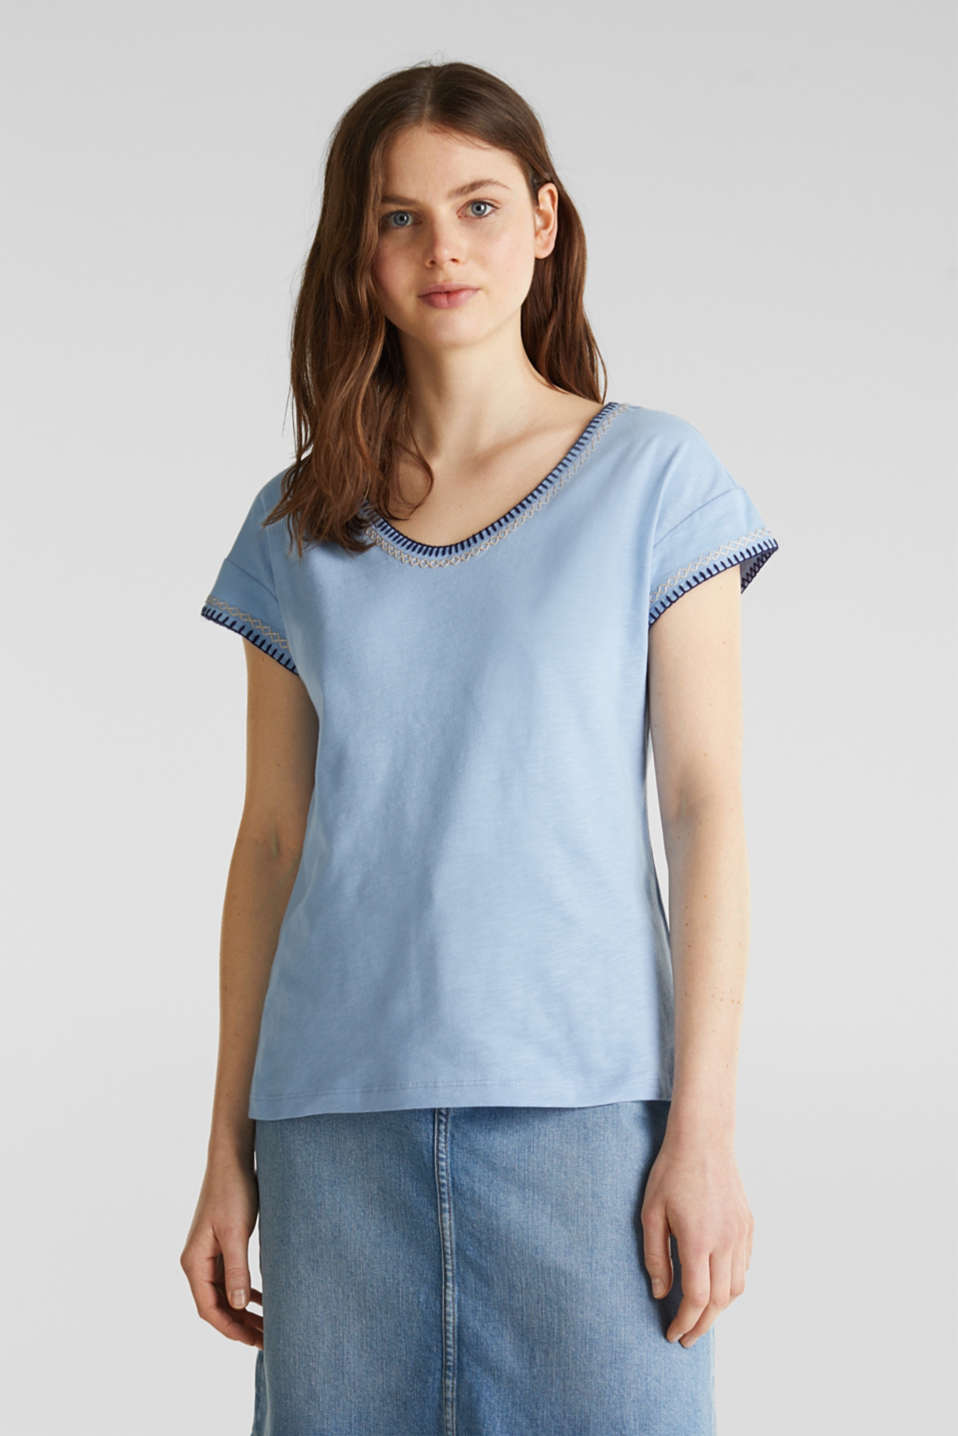 Esprit - Shirt mit Stickerei, 100% Organic Cotton